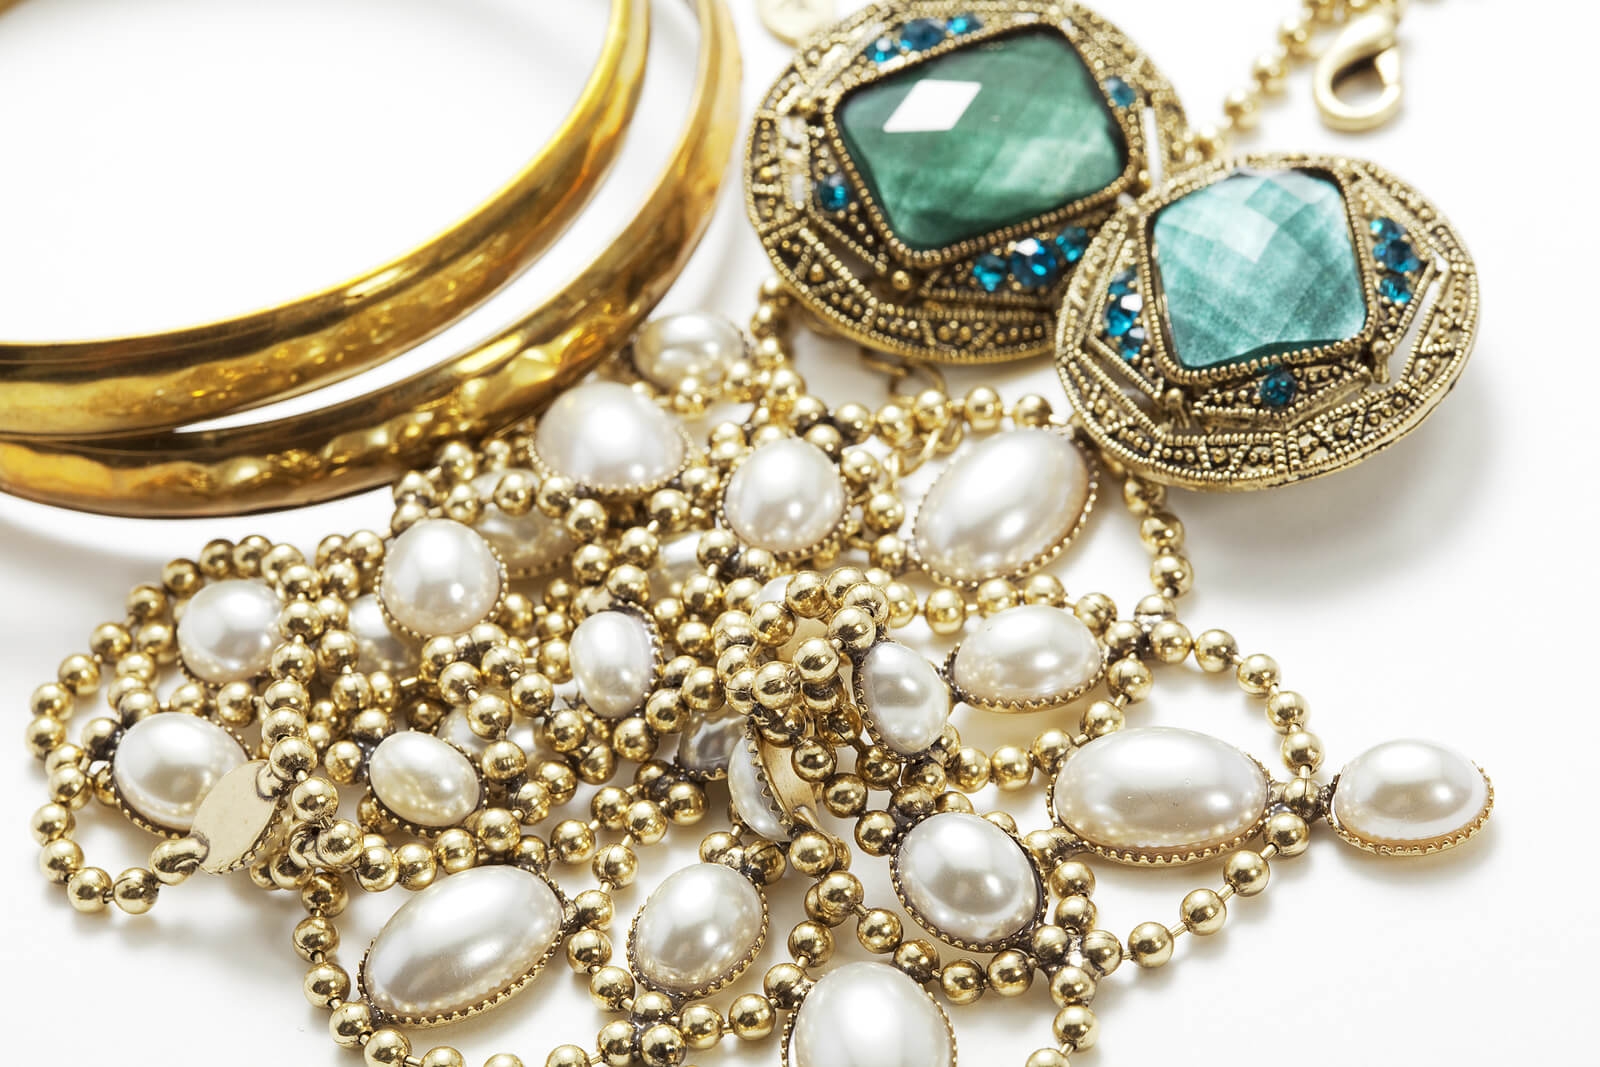 Vintage Jewelry in NYC: A Fashionably Historical Journey